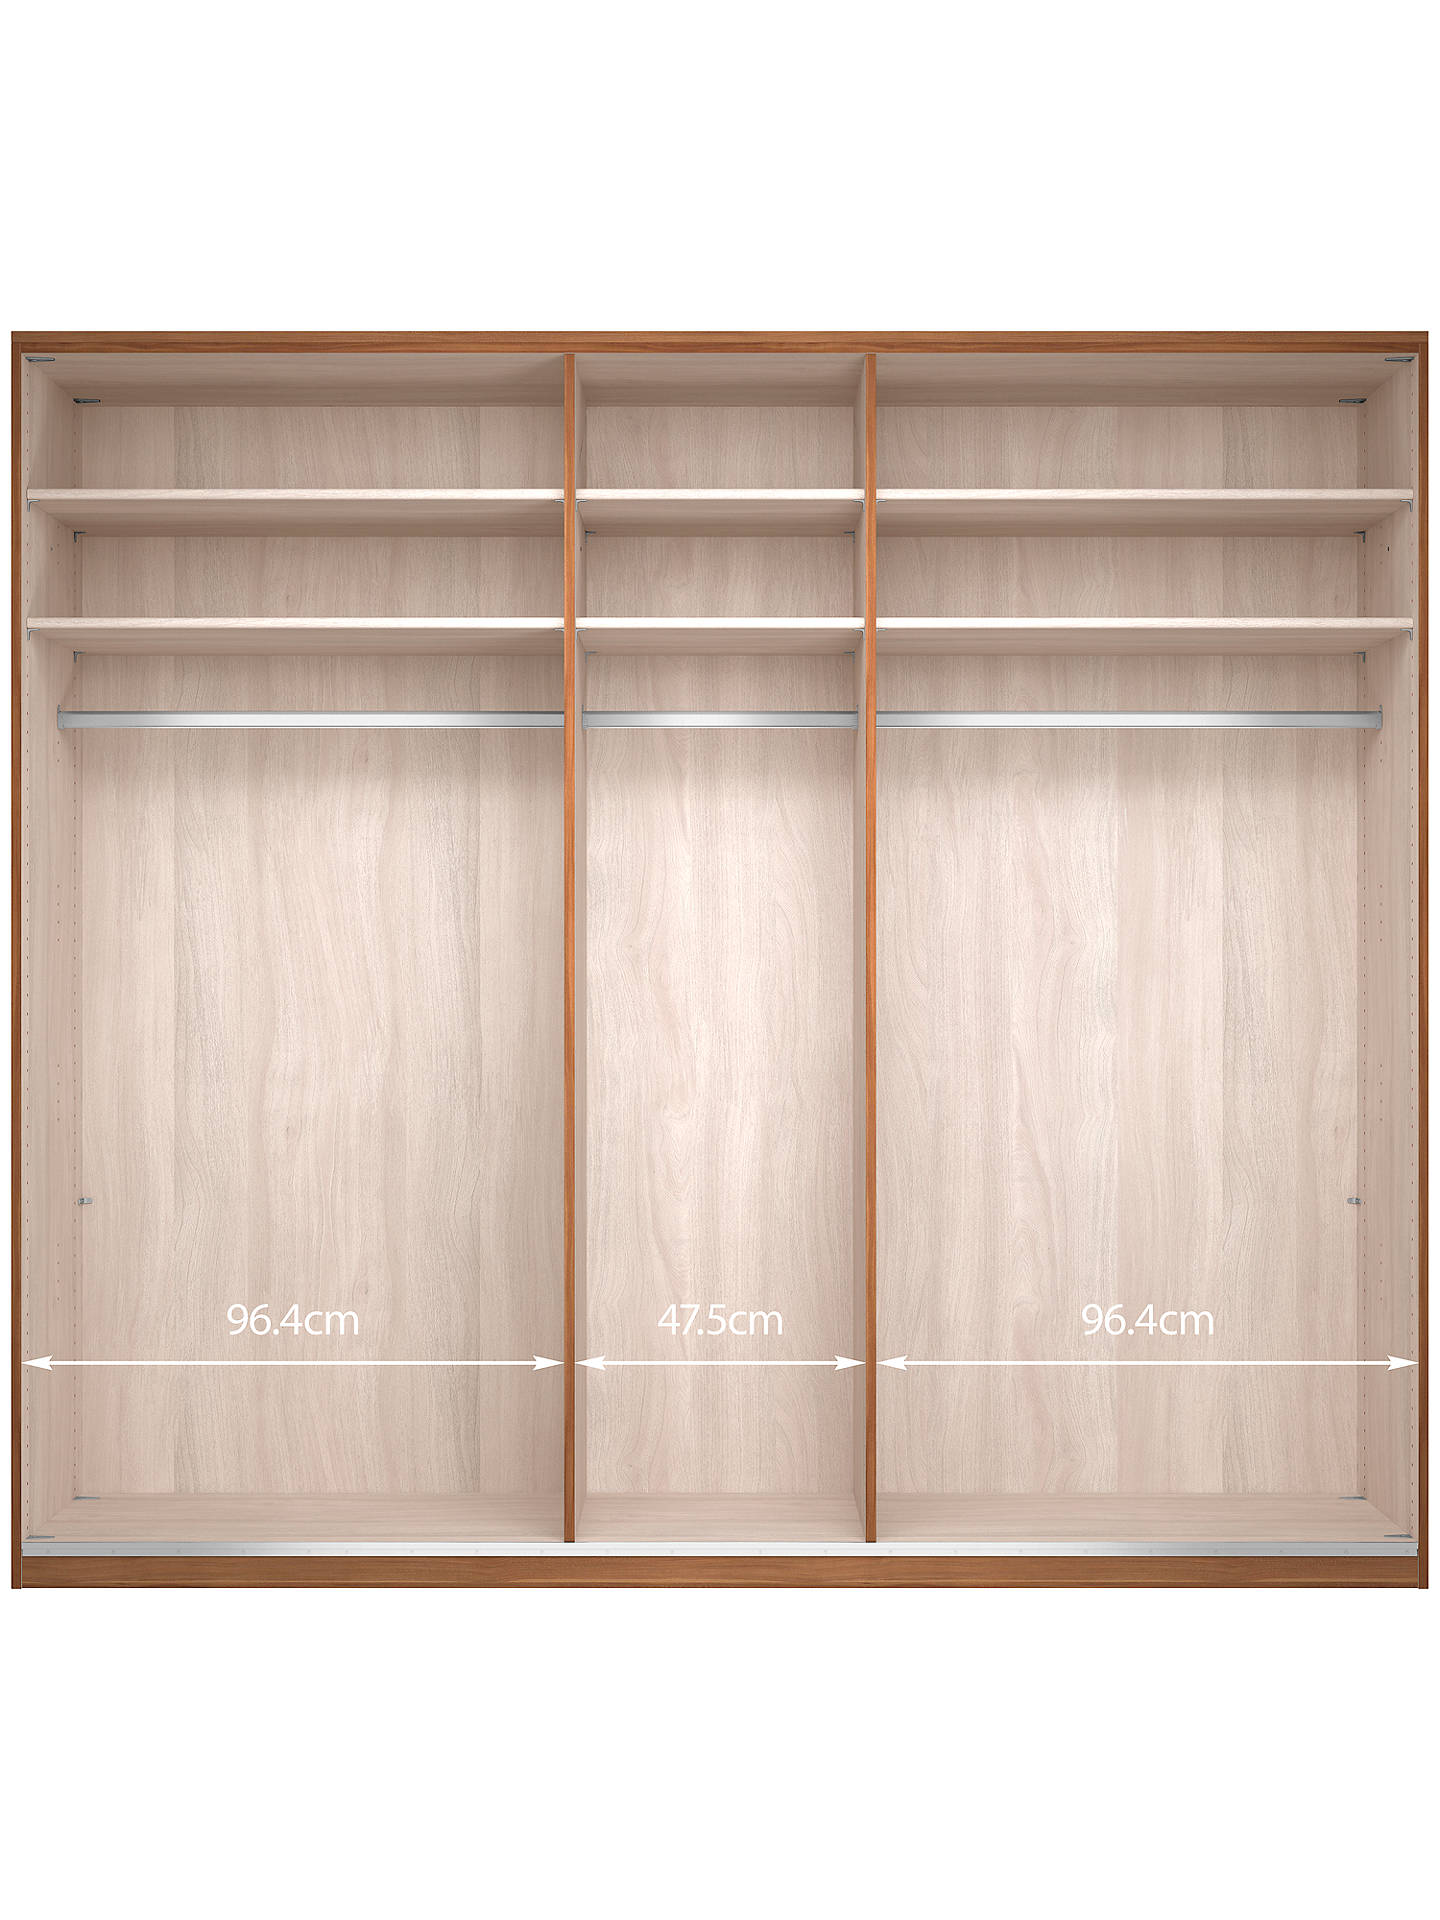 Buy John Lewis & Partners Elstra 250cm Wardrobe with Glass and Mirrored Hinged Doors, White Glass/Matt White Online at johnlewis.com